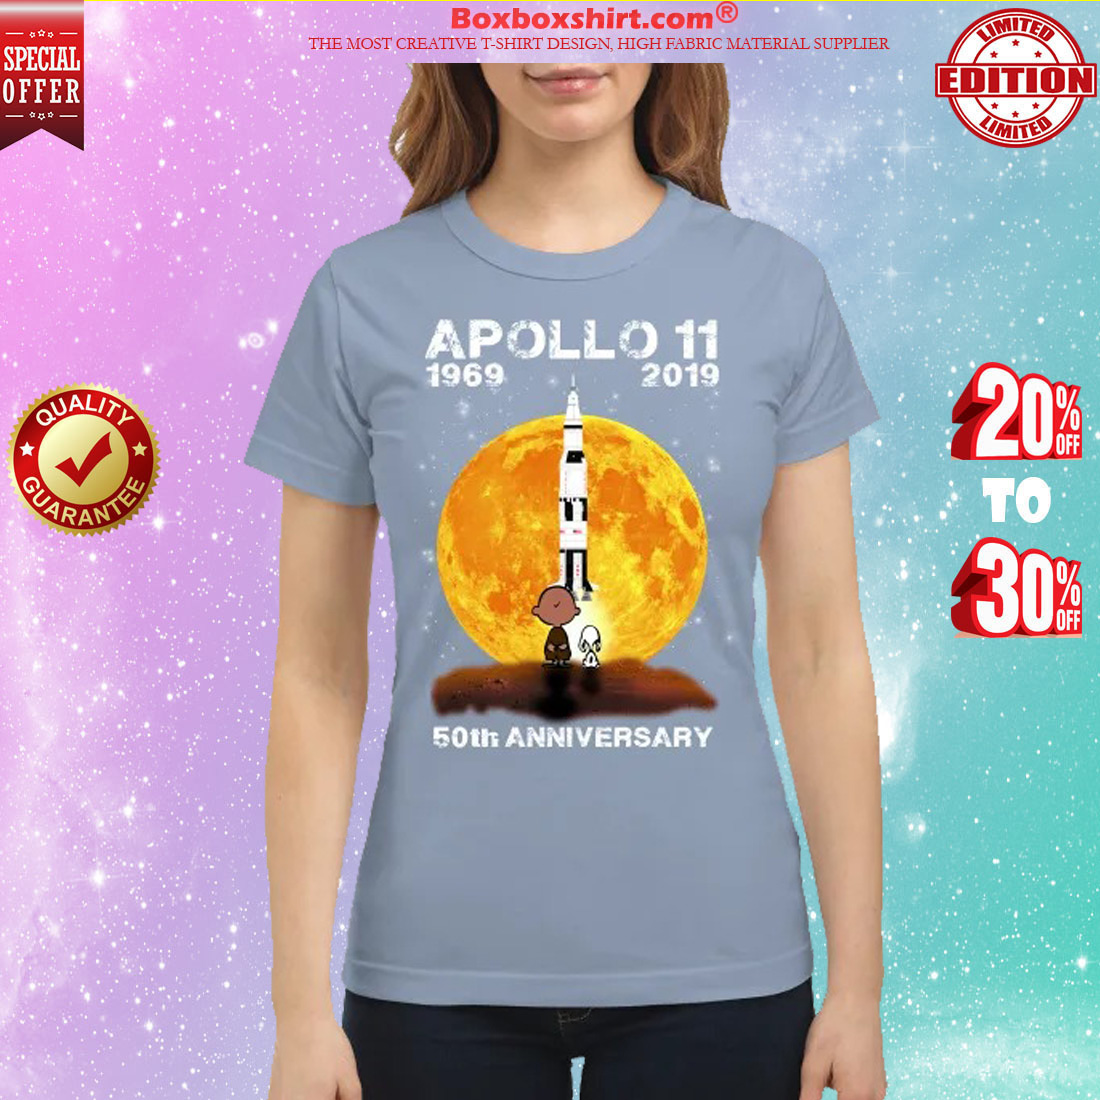 Snoopy and Charlie Brown apollo 11 1960 2019 50th Anniversary classic shirt